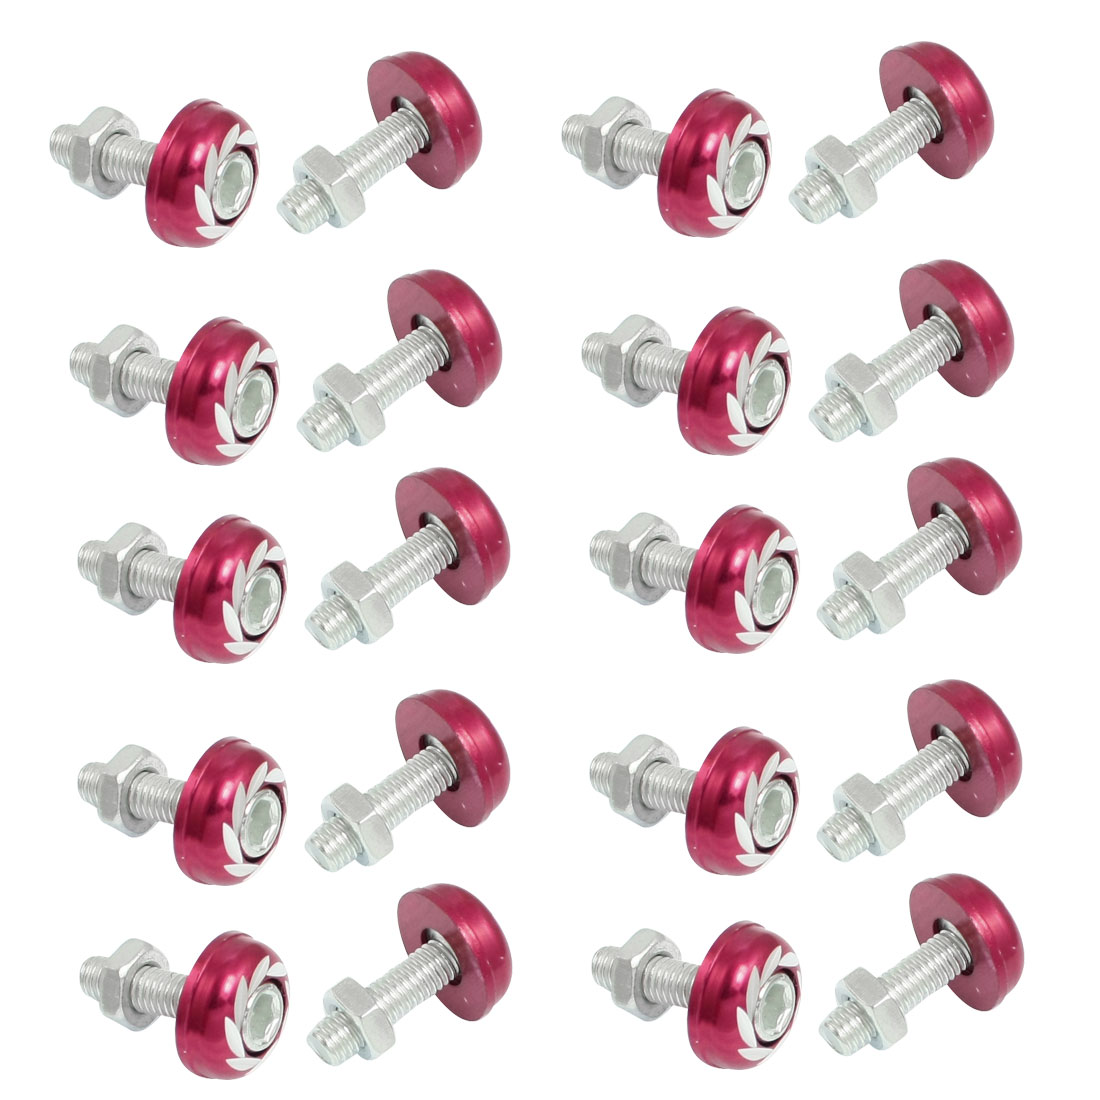 20 Pcs Silver Tone Red Round Car License Plate Bolt Screw